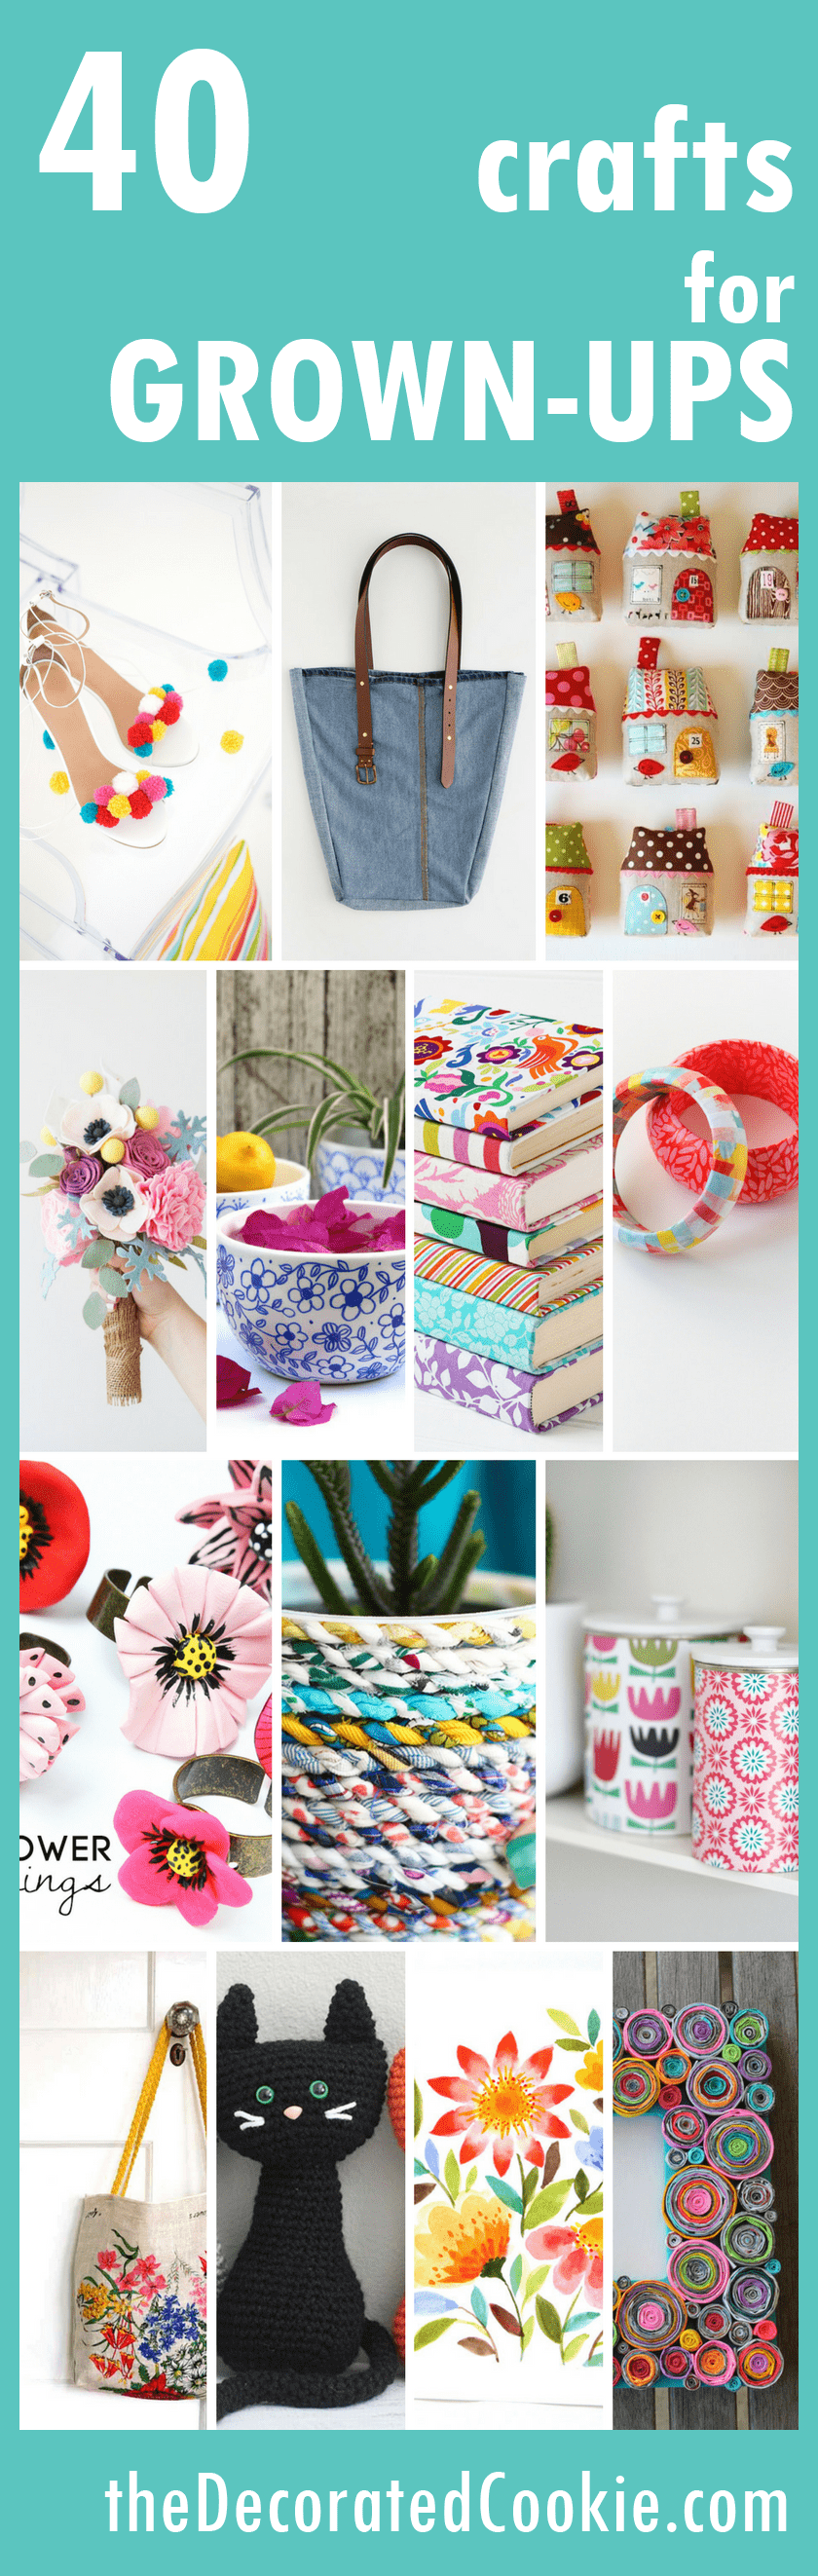 roundup of 40 awesome CRAFTS for grown-ups